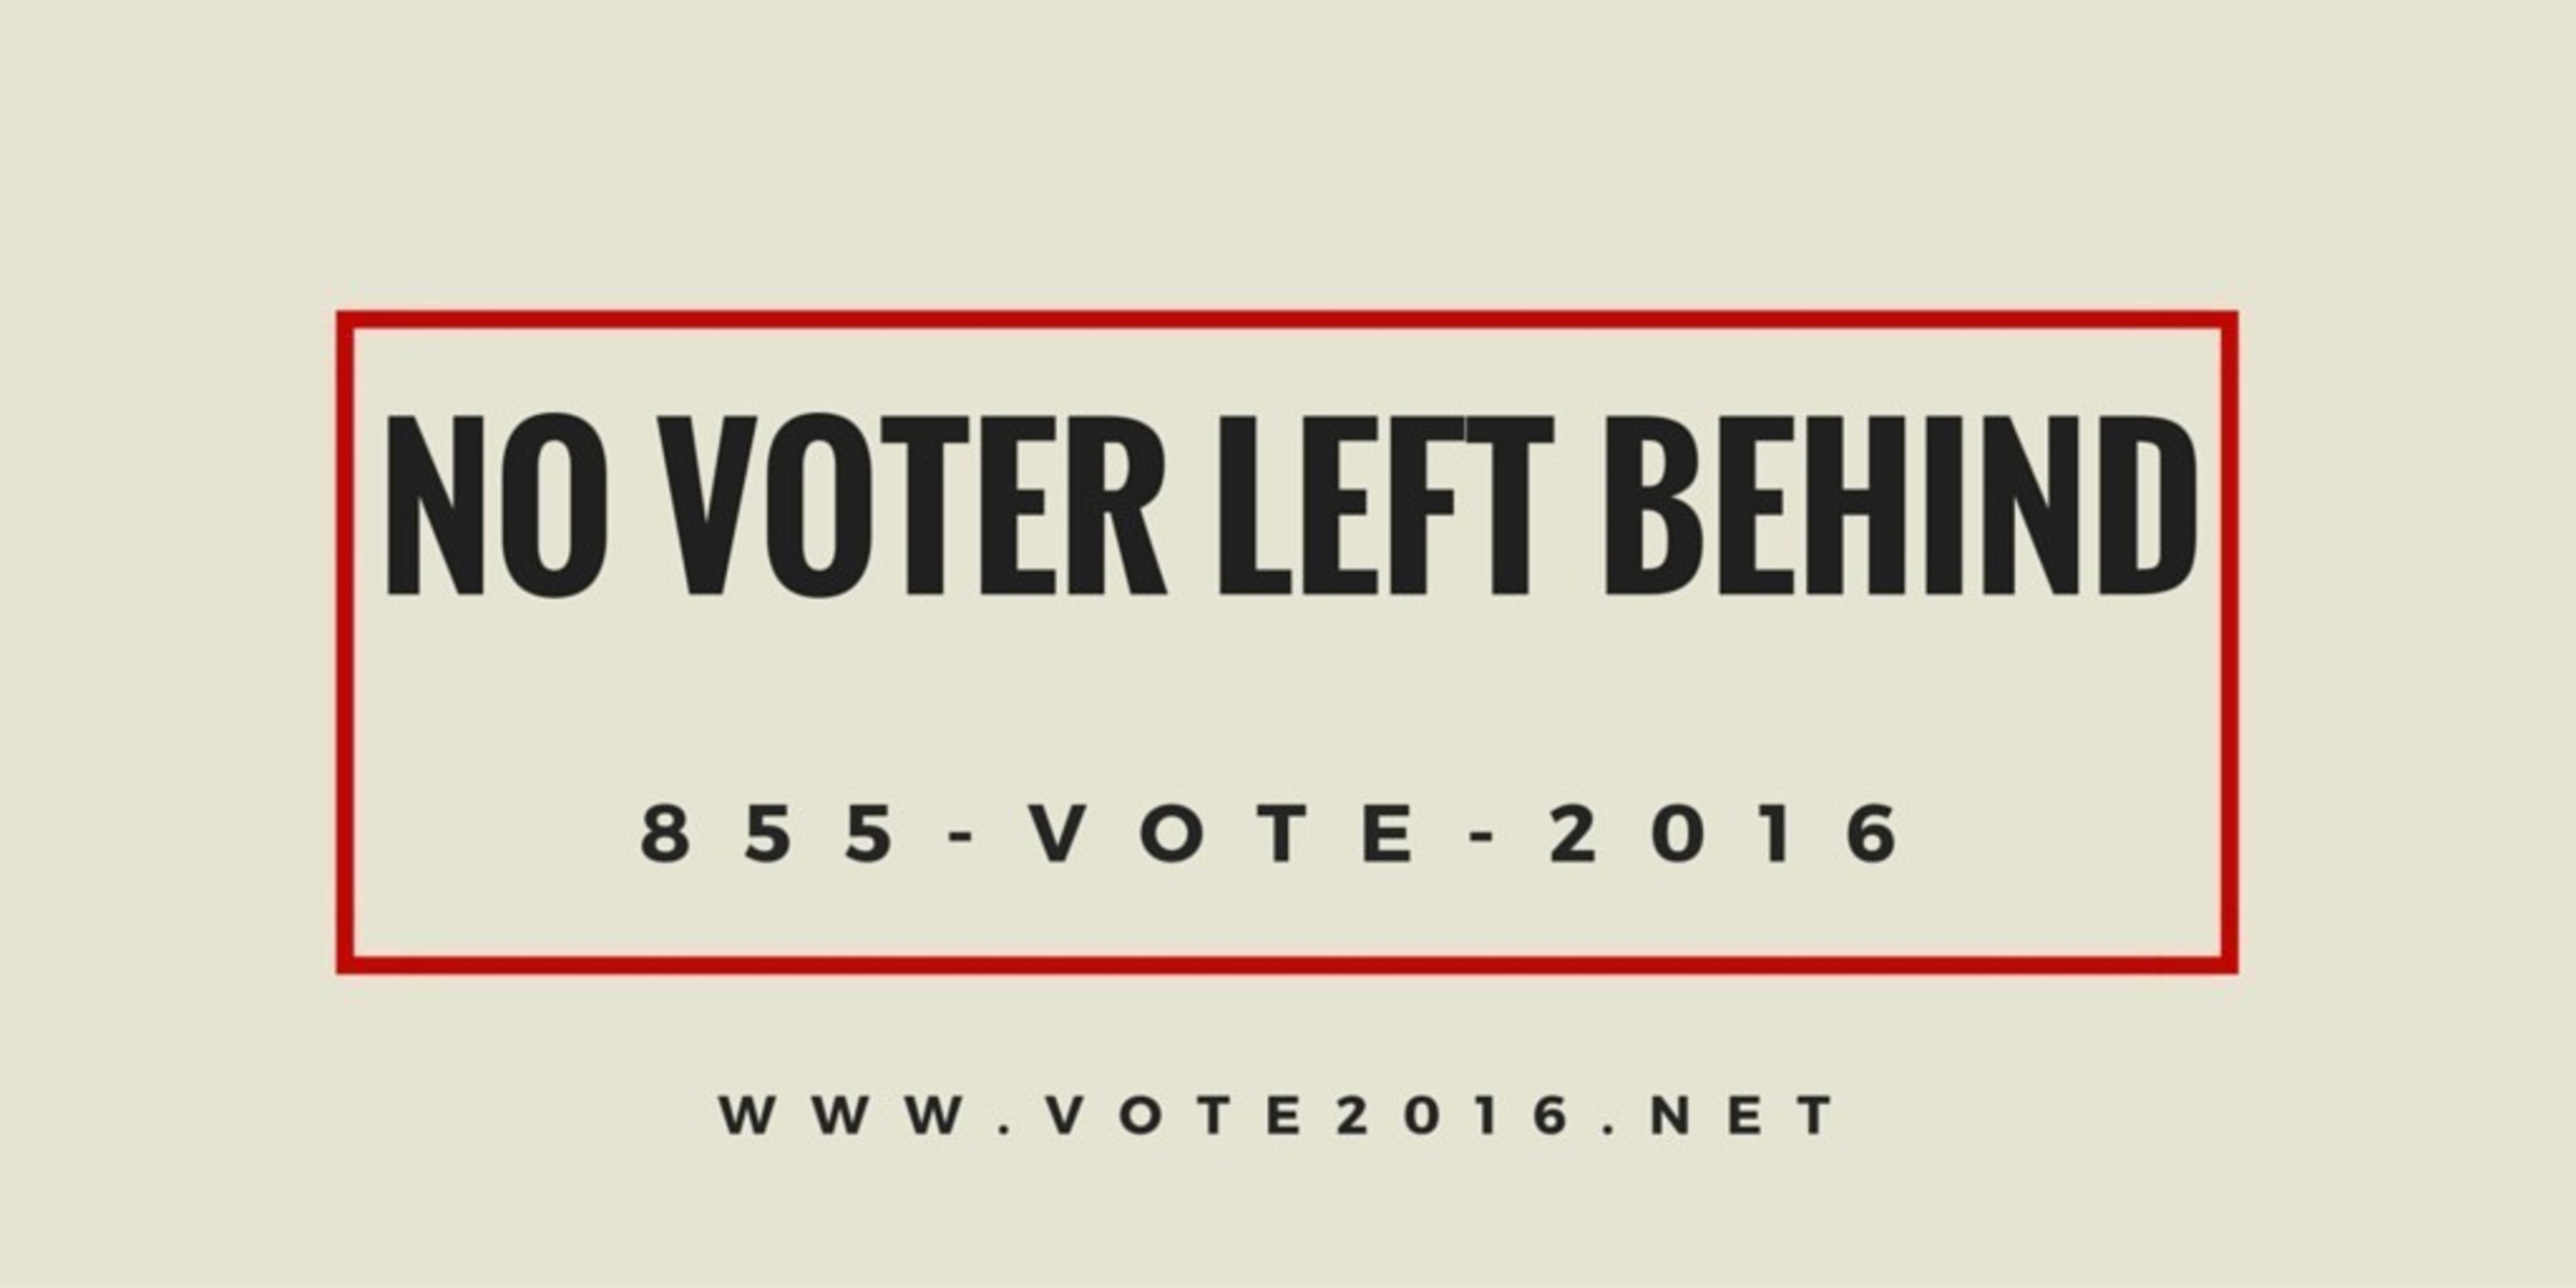 No Voter Left Behind